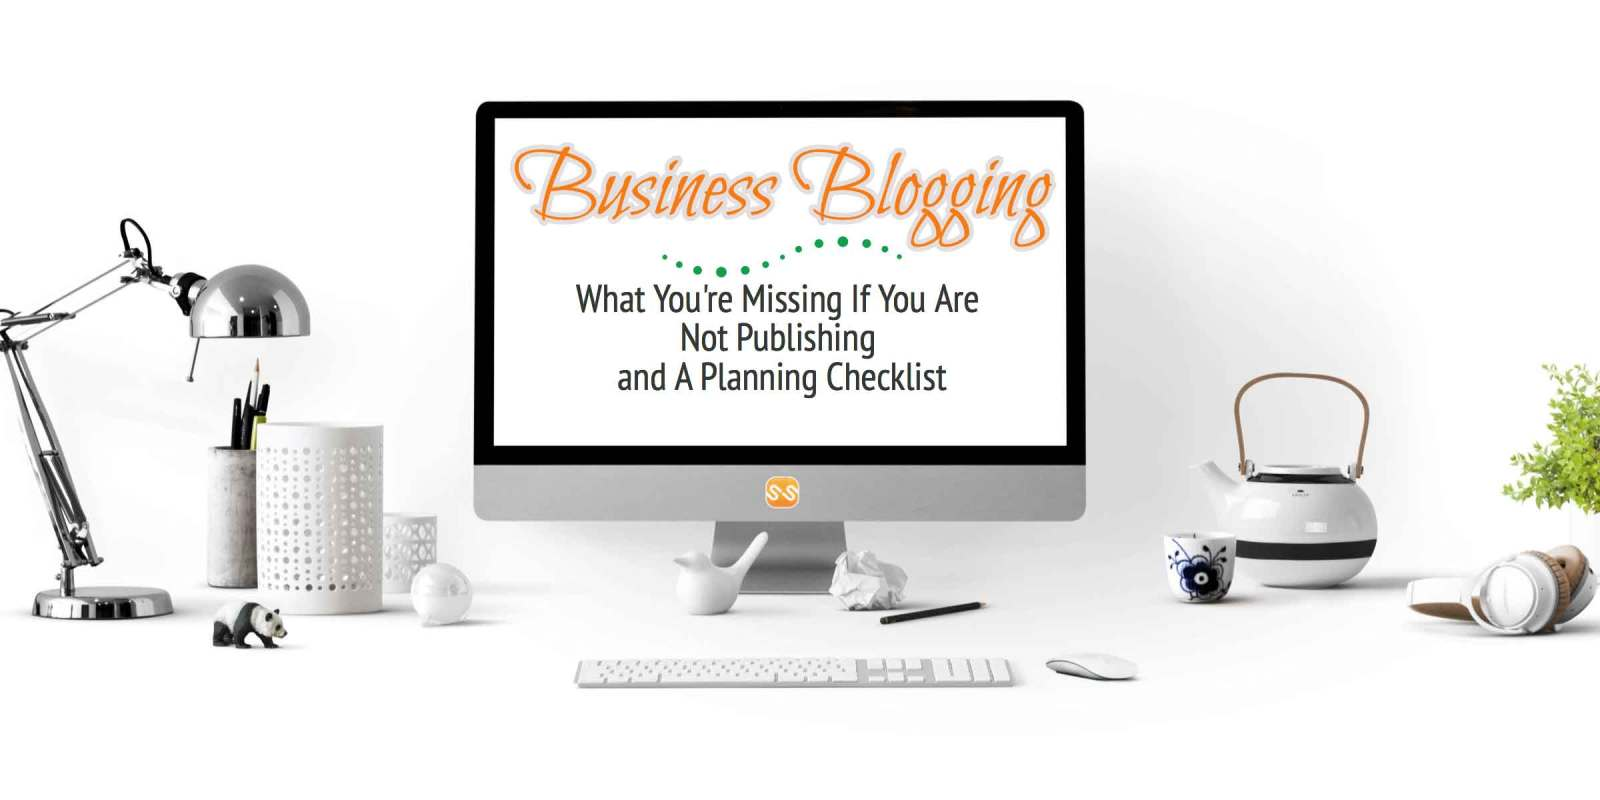 Business Blogging: What Your Business is Missing If You Are Not Blogging and What to Do